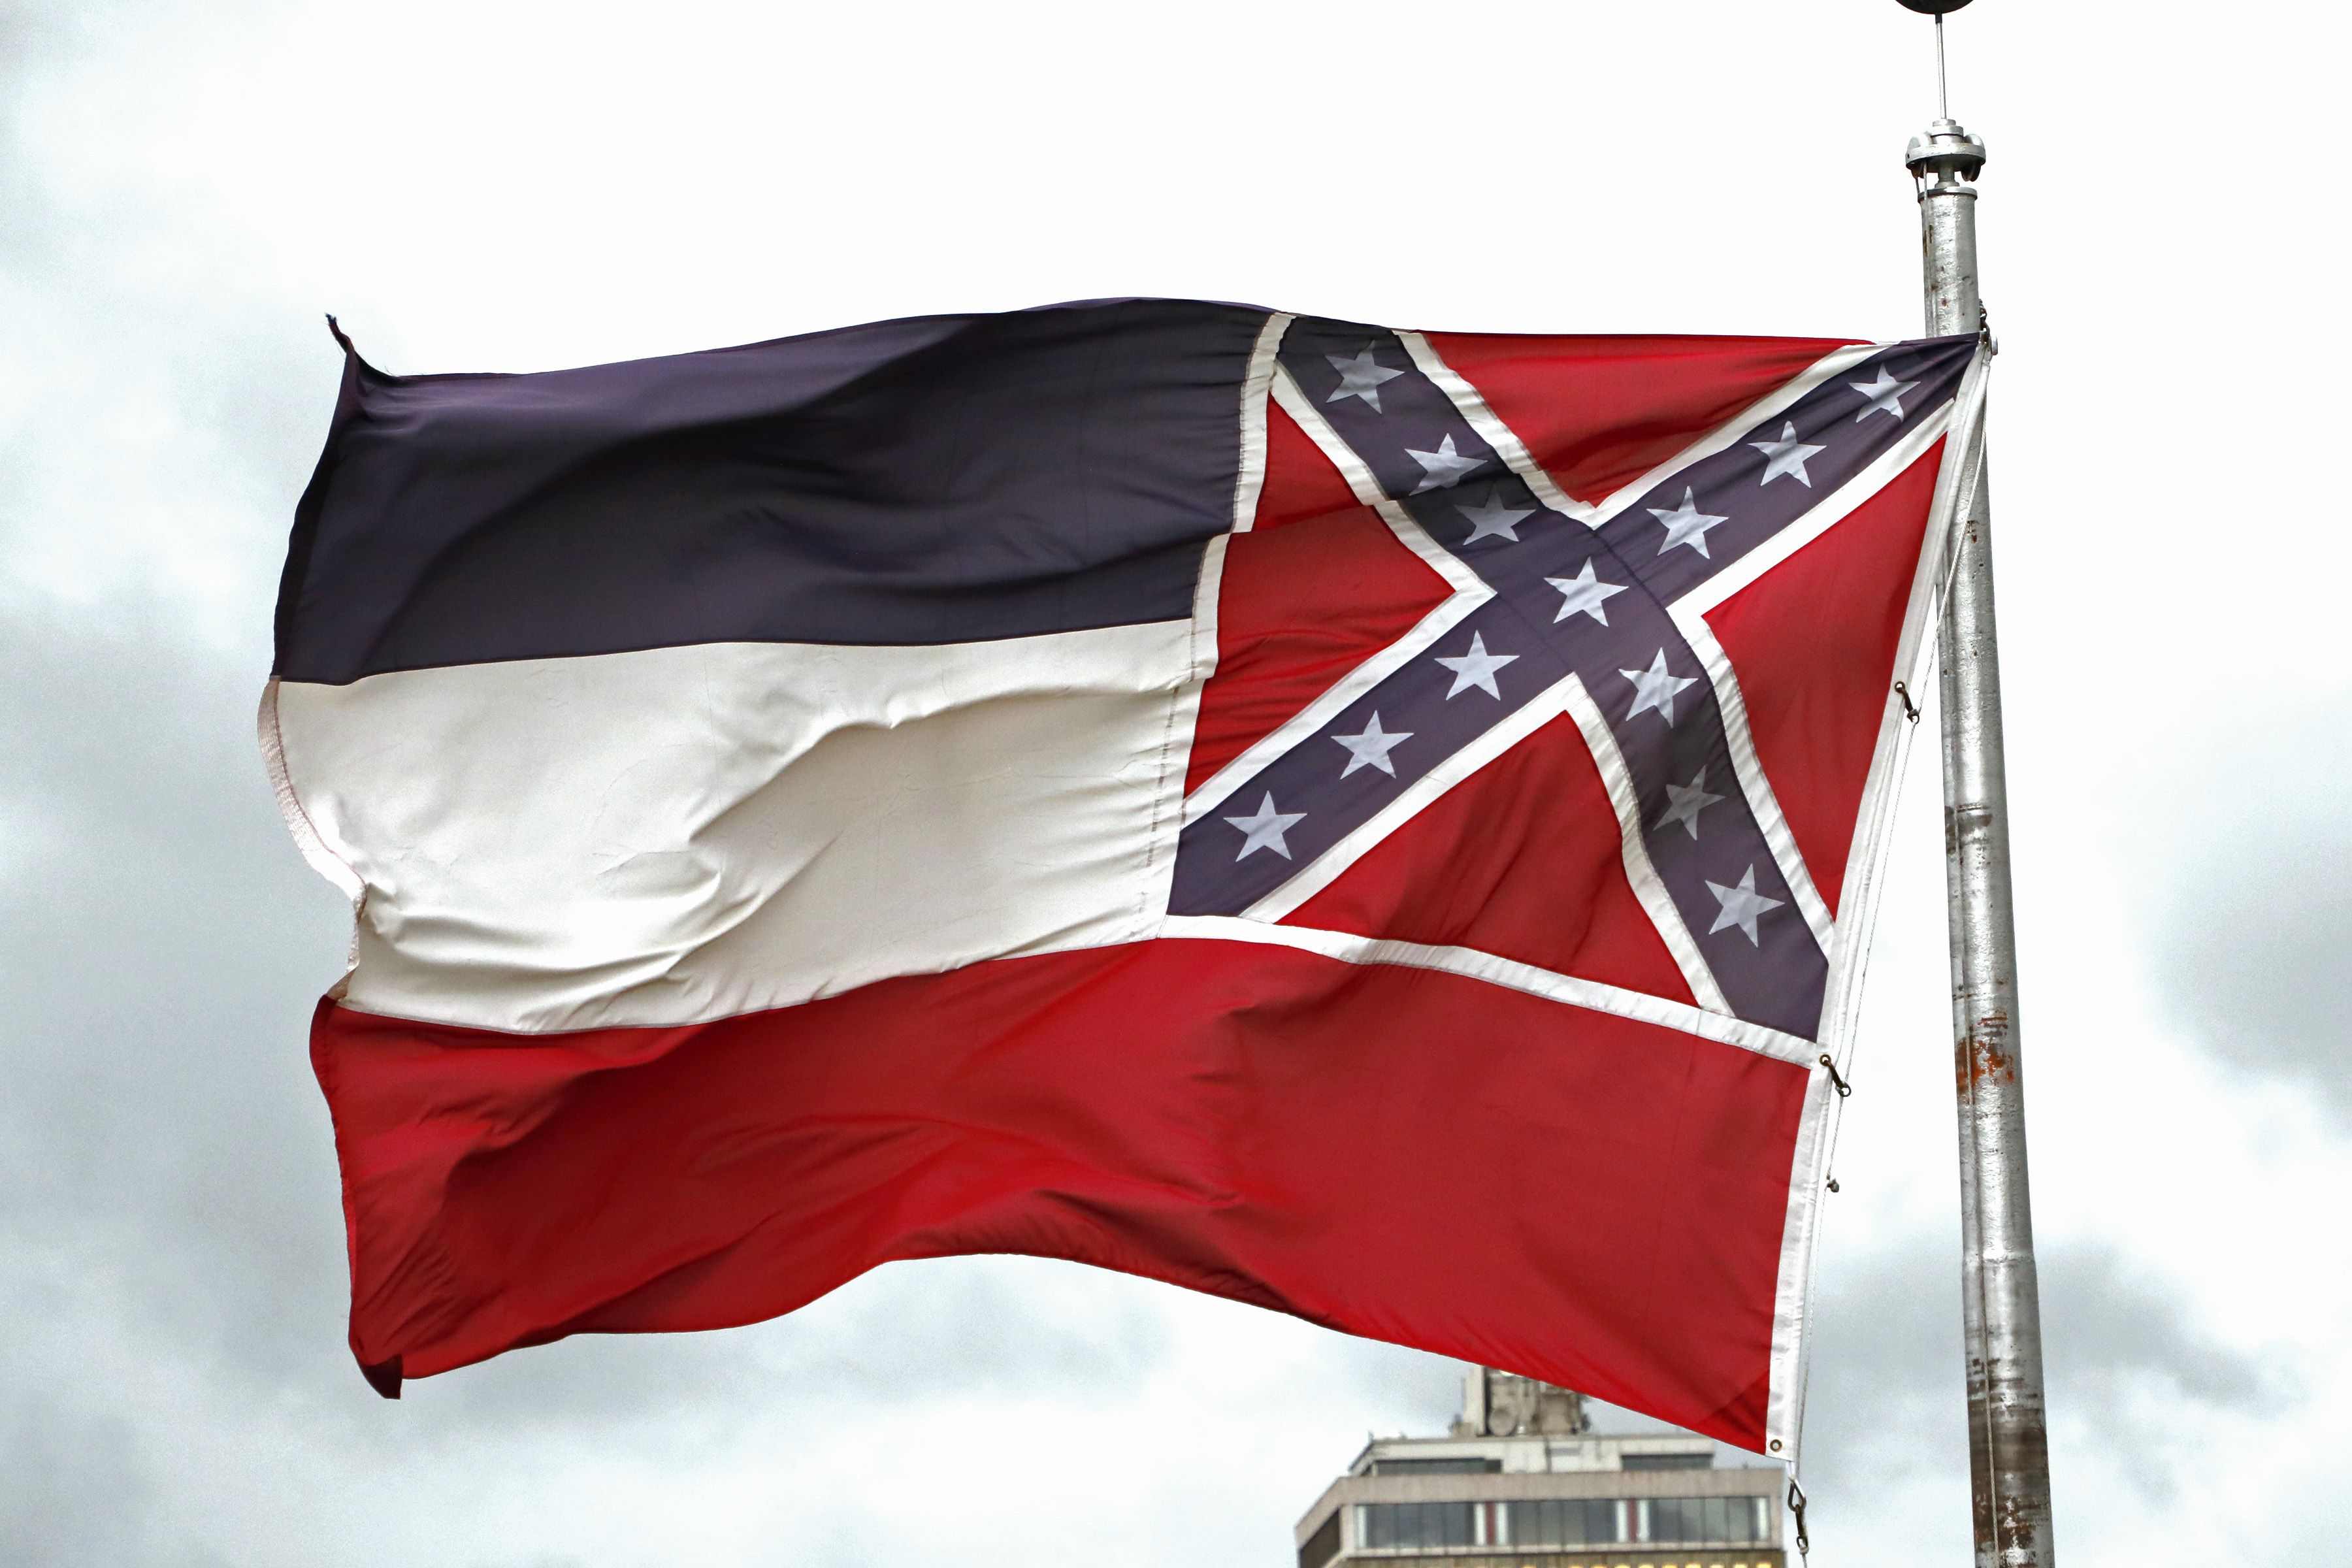 A Mississippi state flag flying outside the Capitol in Jackson, Miss., on June 25, 2020.